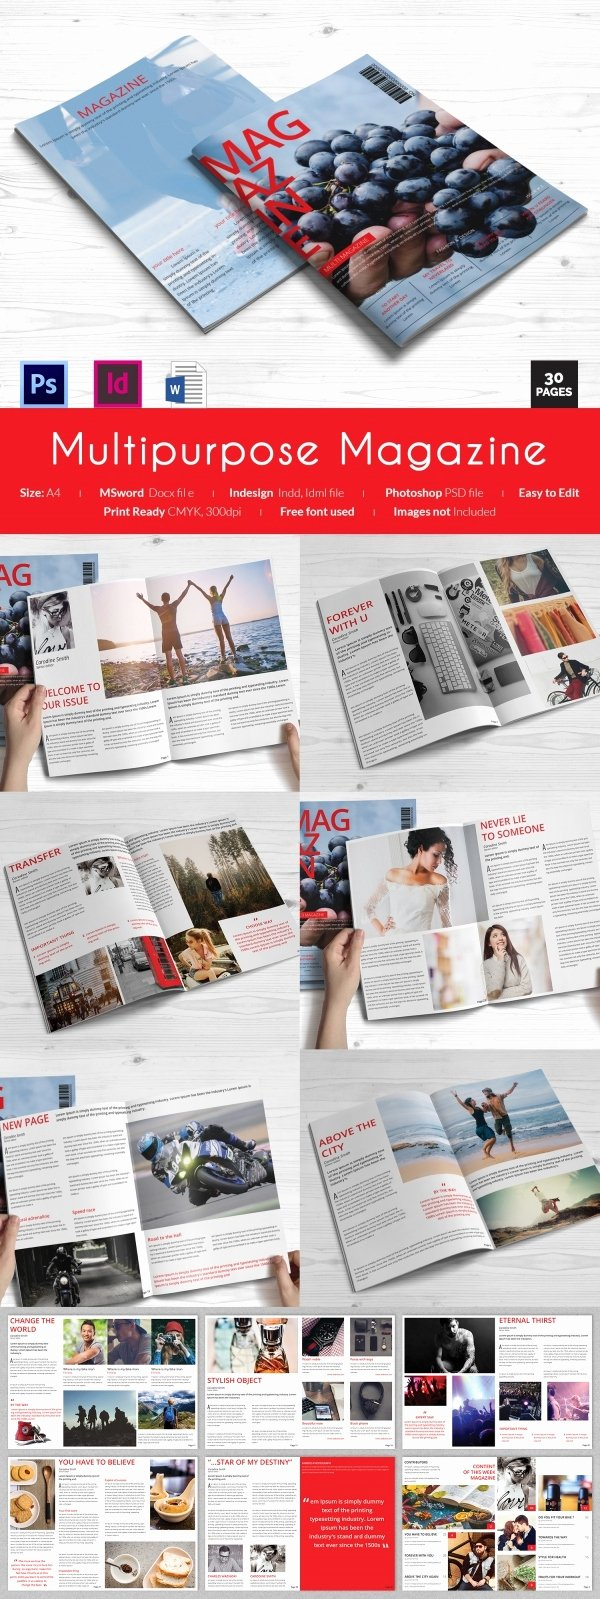 Magazine Templates for Microsoft Word Elegant 55 Brand New Magazine Templates Free Word Psd Eps Ai